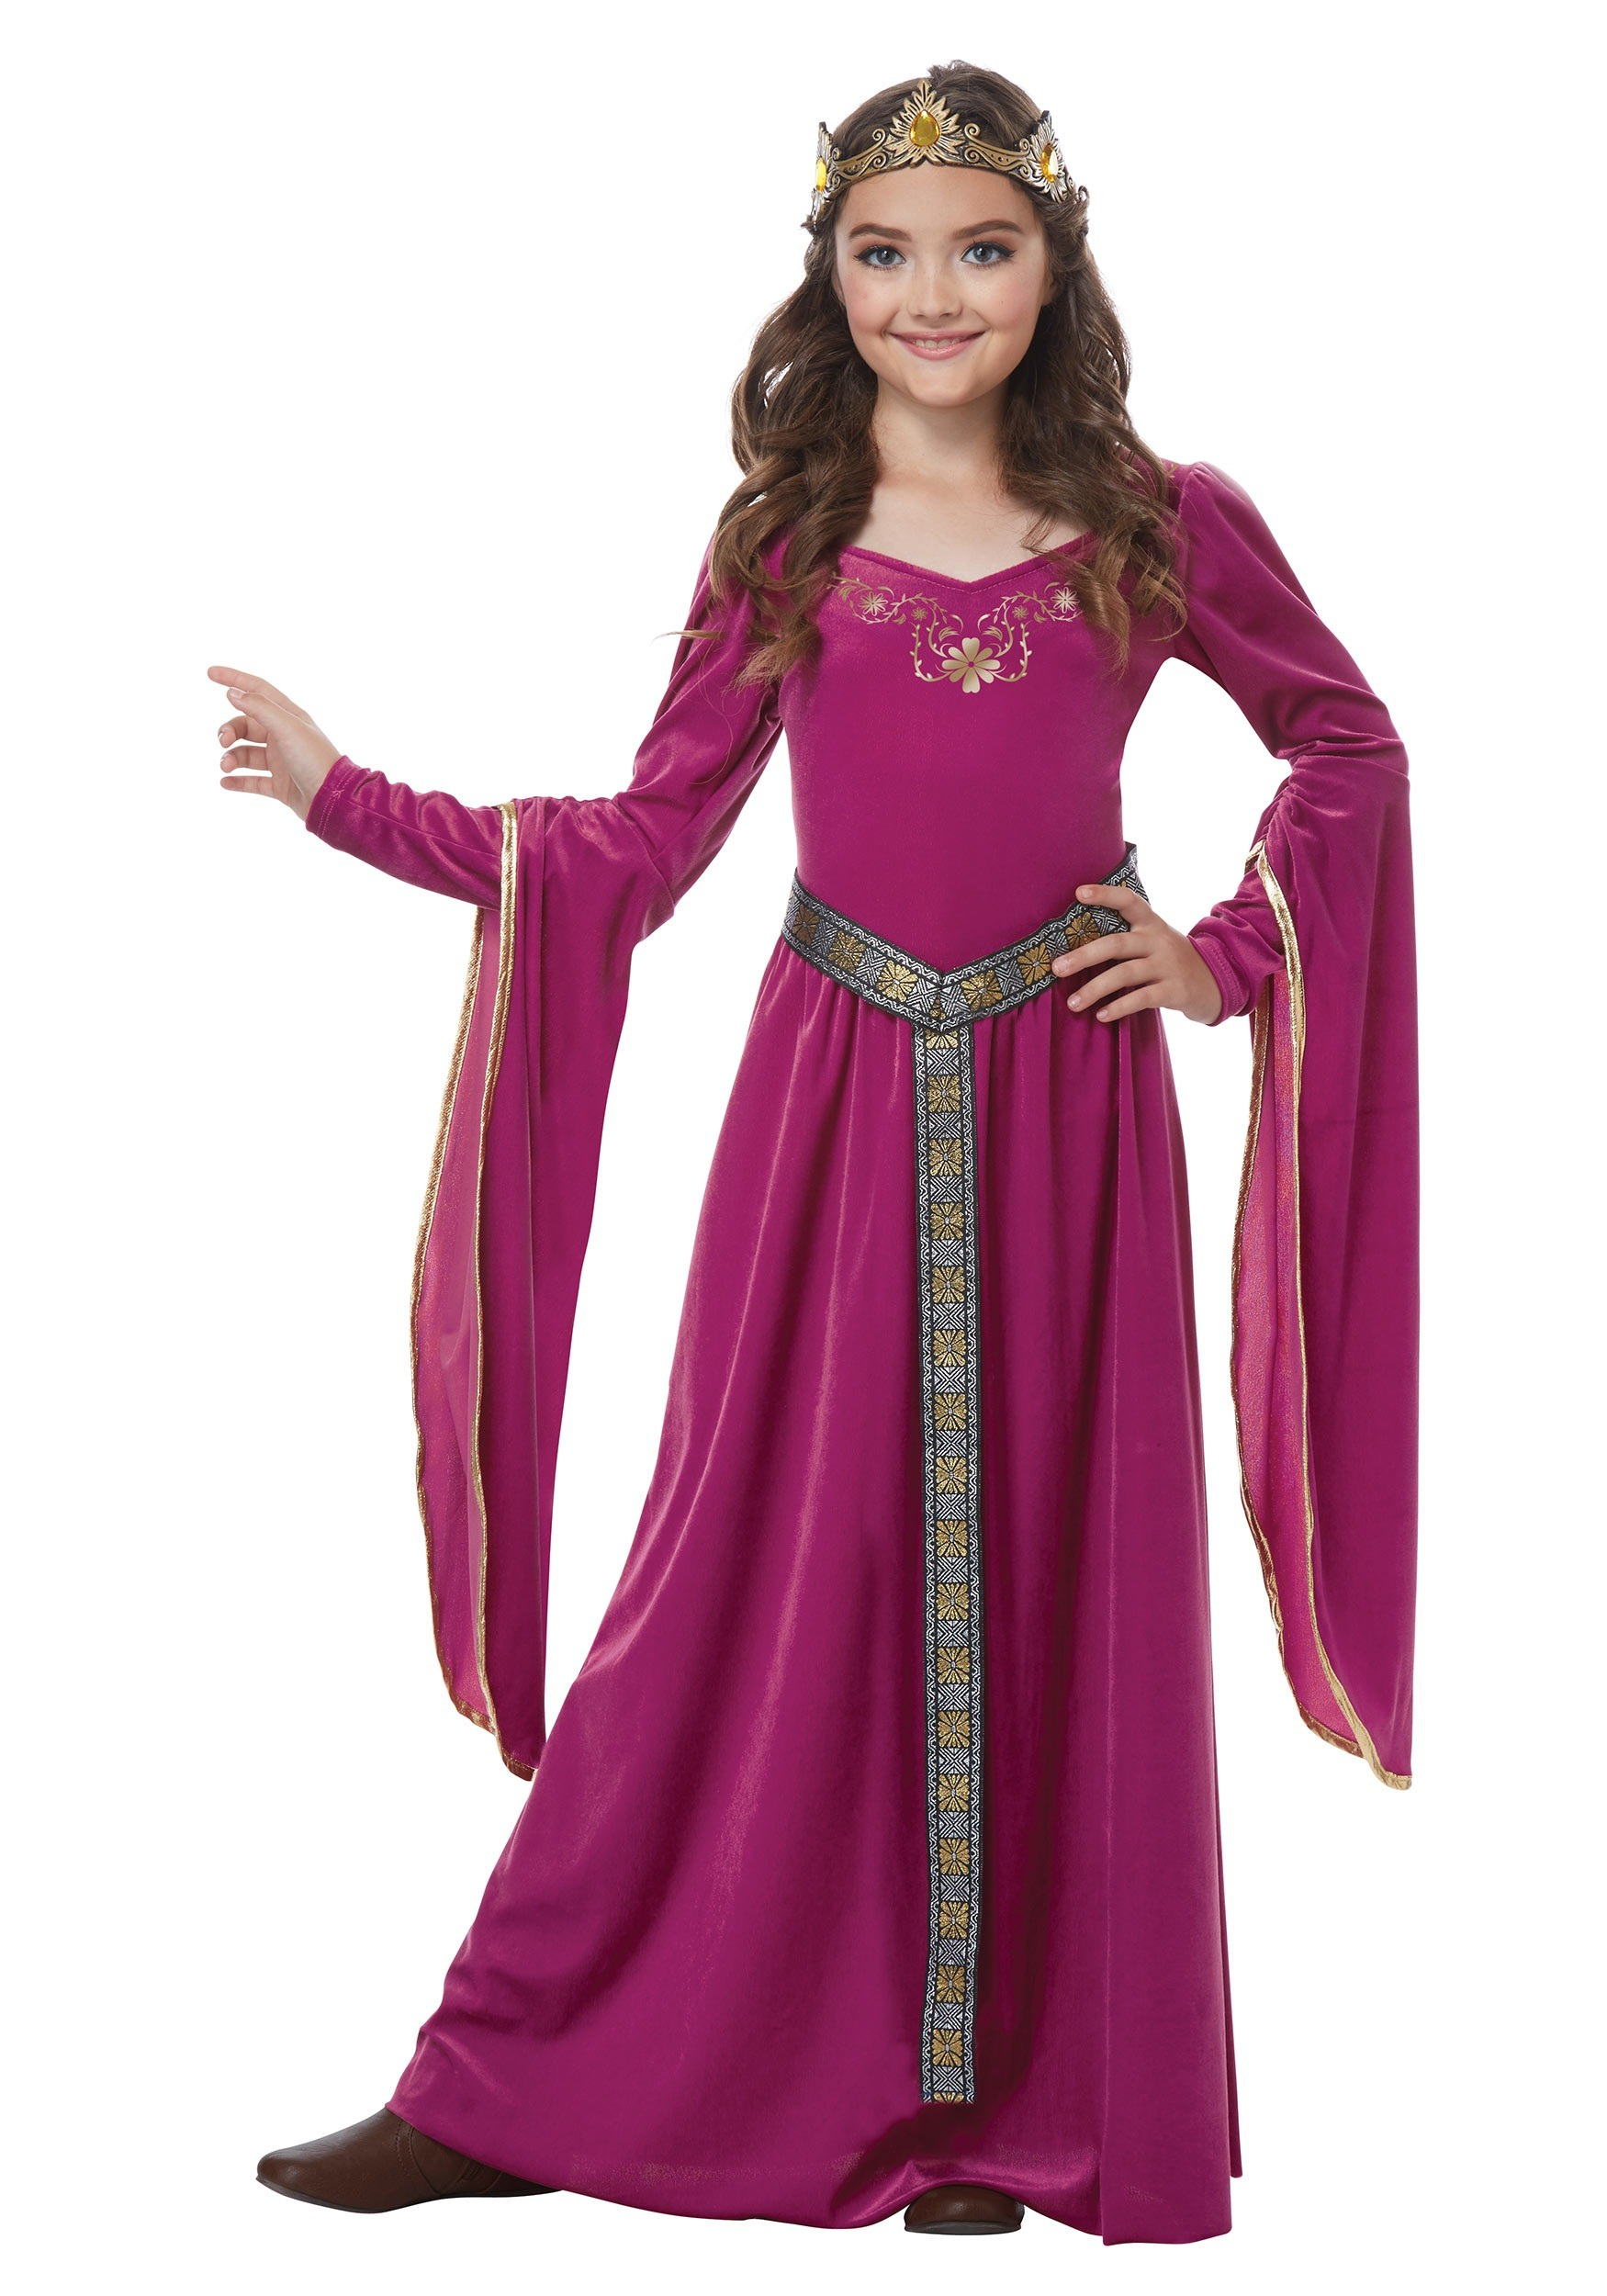 Girls Medieval Princess Costume  sc 1 st  Halloween Costumes & Medieval Princess Costume for Girls